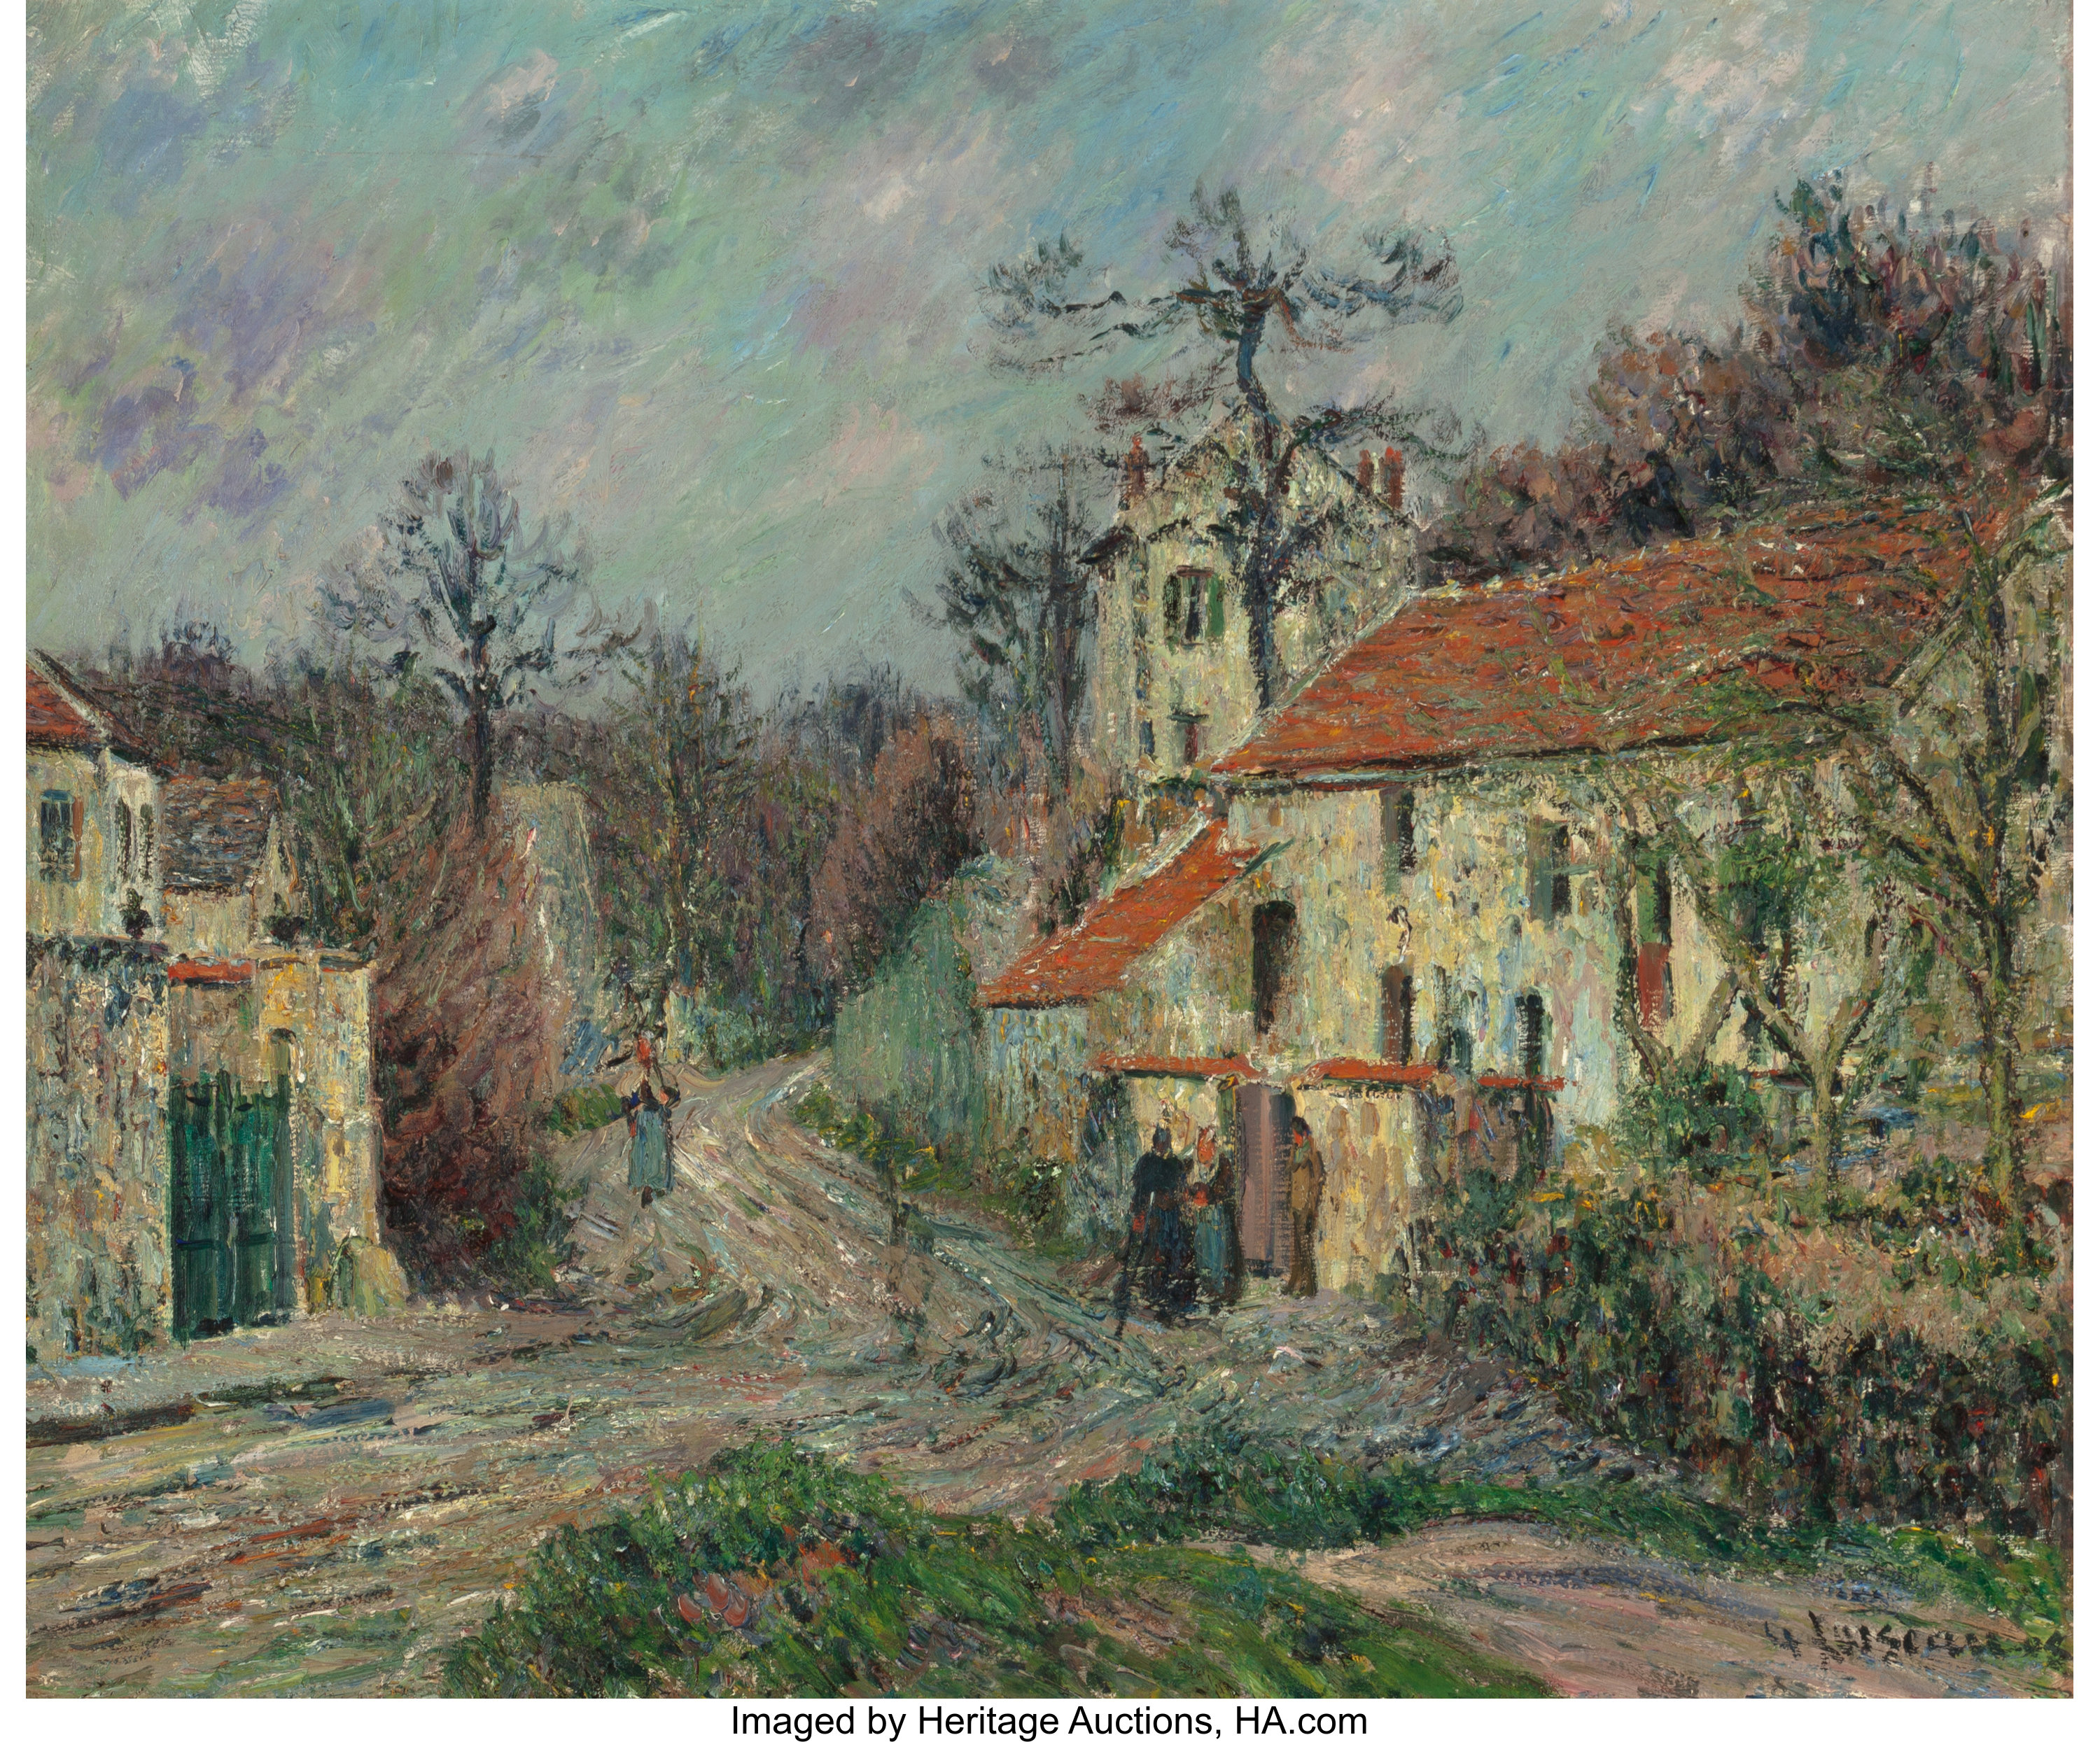 Gustave Loiseau French 1865 1935 Paysage D Hiver A Chaponval Lot 63051 Heritage Auctions